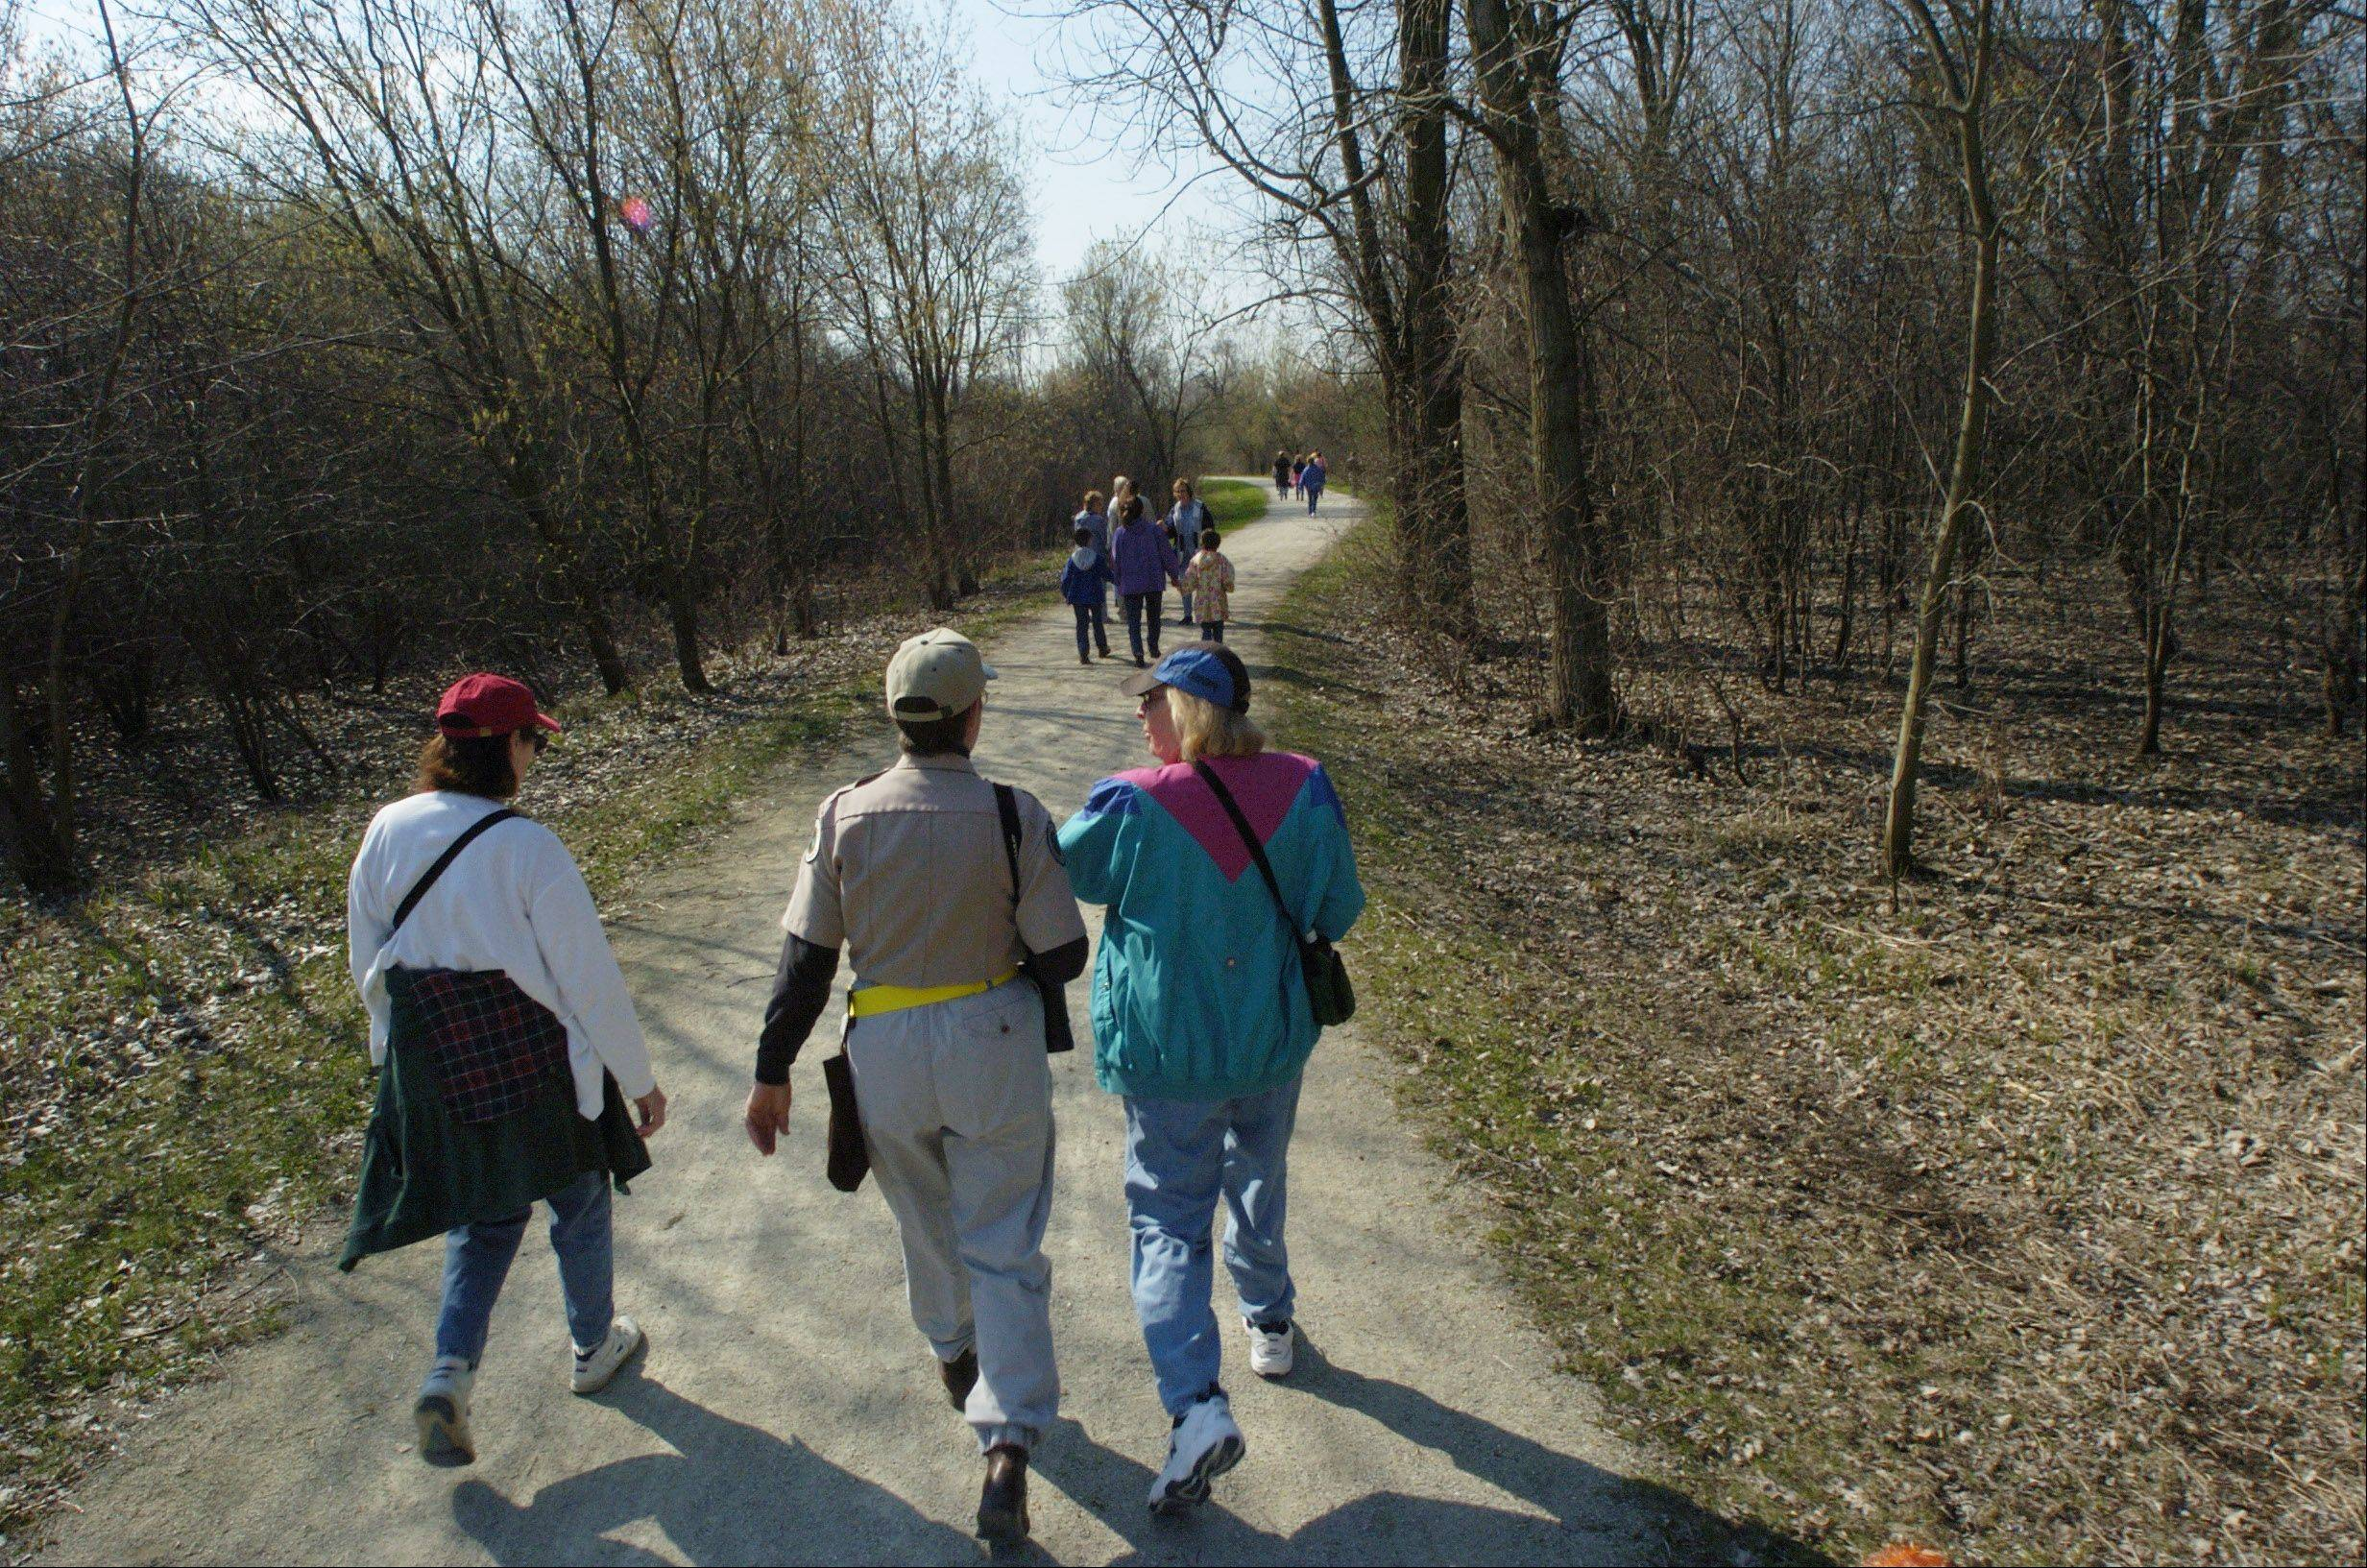 Connecting local and regional amenities through an improved trail system is the goal of Antioch officials, who are partnering with the Chicago Metropolitan Agency for Planning to produce a �lifestyle corridor� plan.